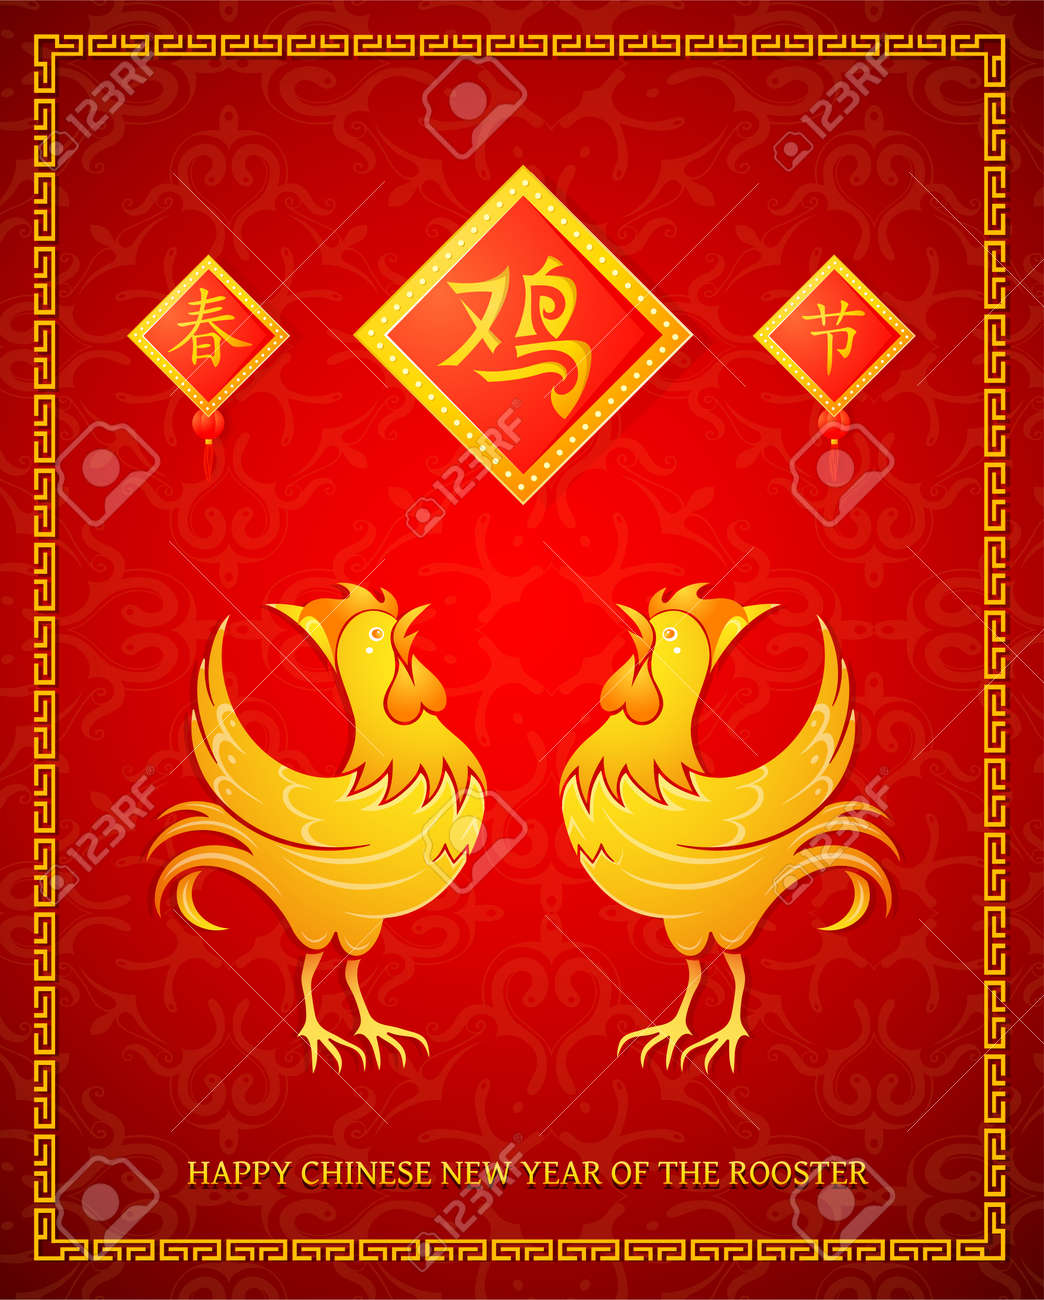 Traditional Greeting Card Design For Chinese New Year With Pair